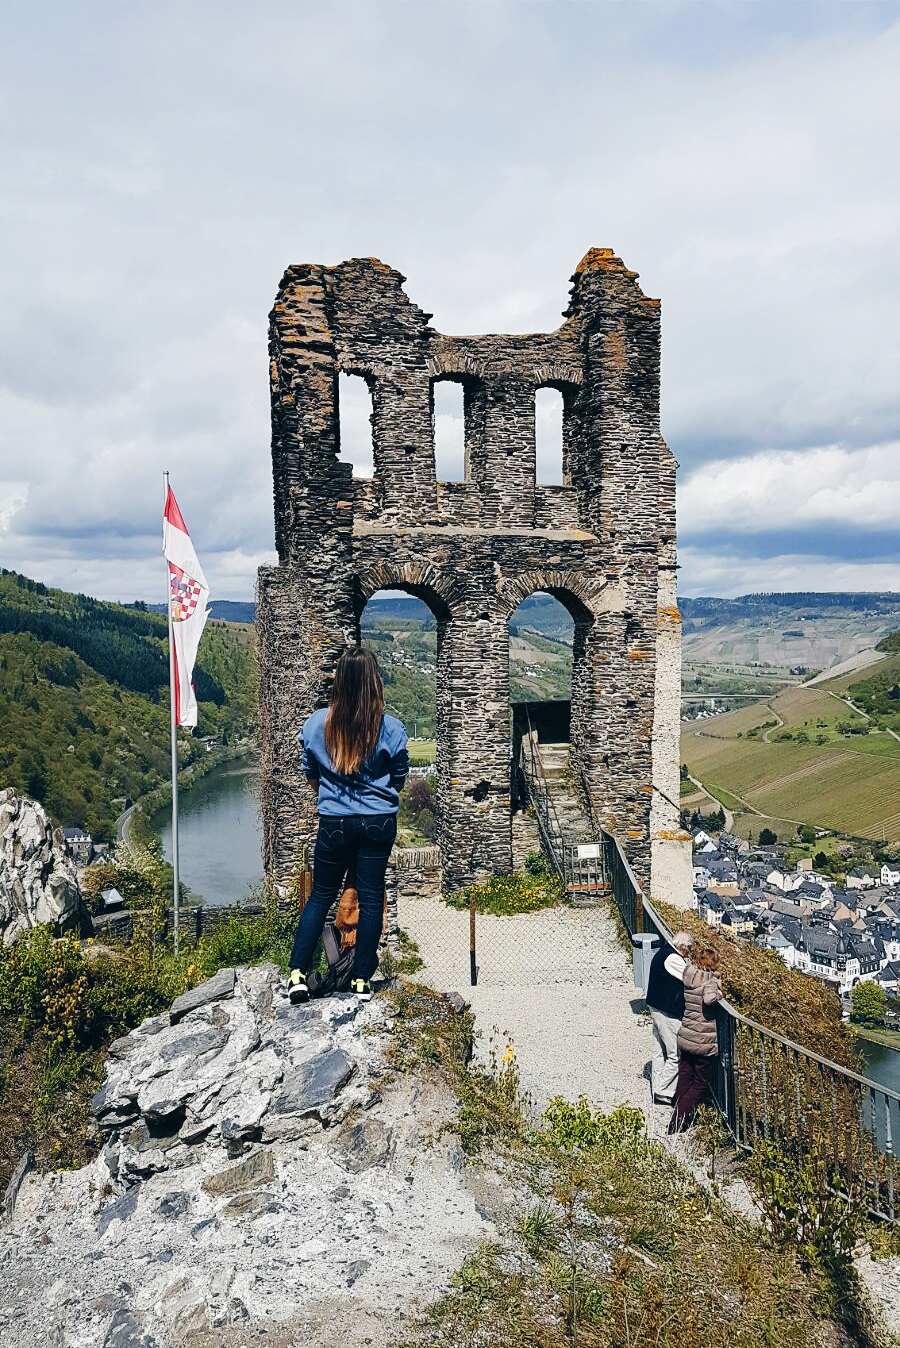 View over the Moselle River